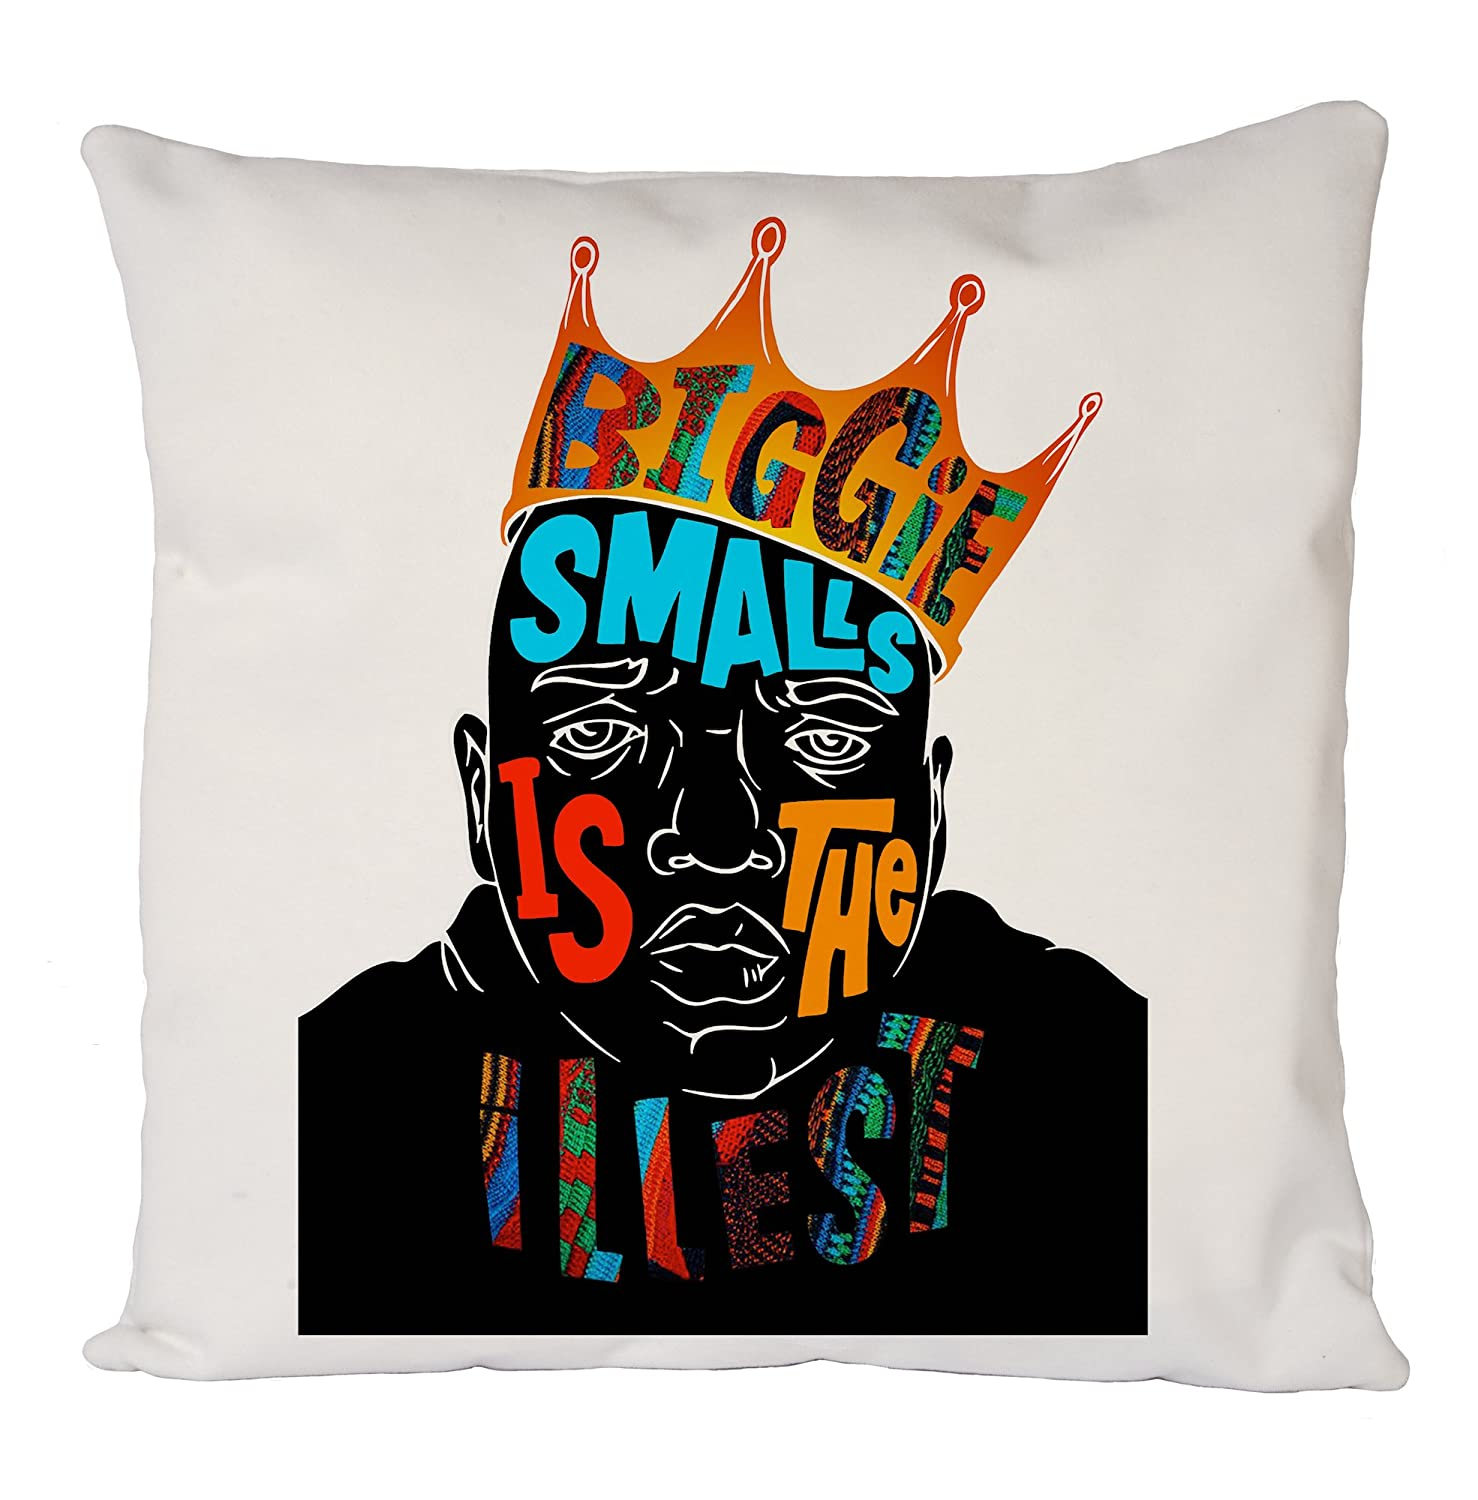 Biggie Smalls Is The Illest, Pillow Case, Cushion Cover, Home Sofa Décor Uk print king